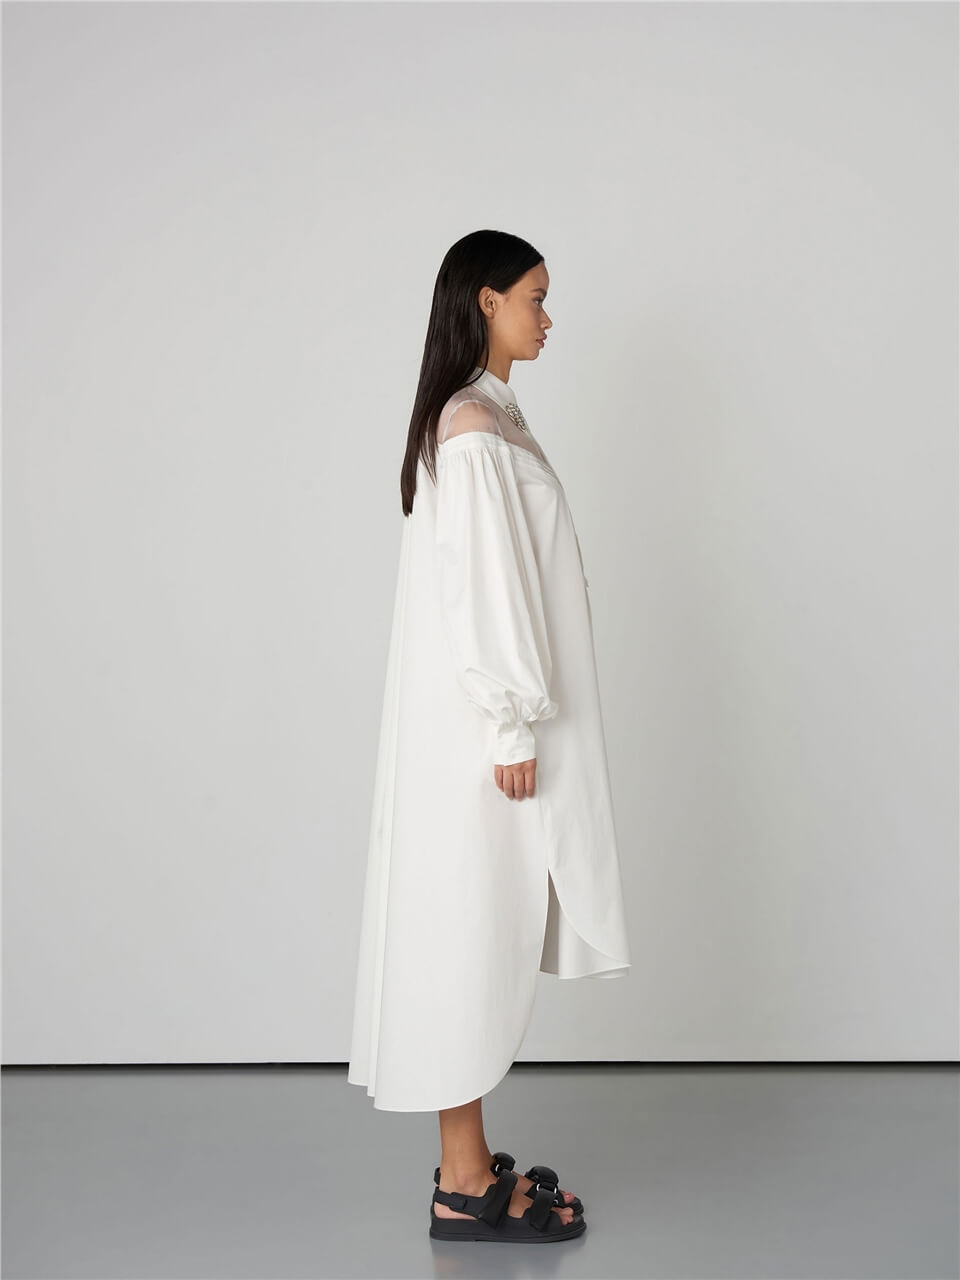 MARKABlouse{}White Shirt DressQW2144073